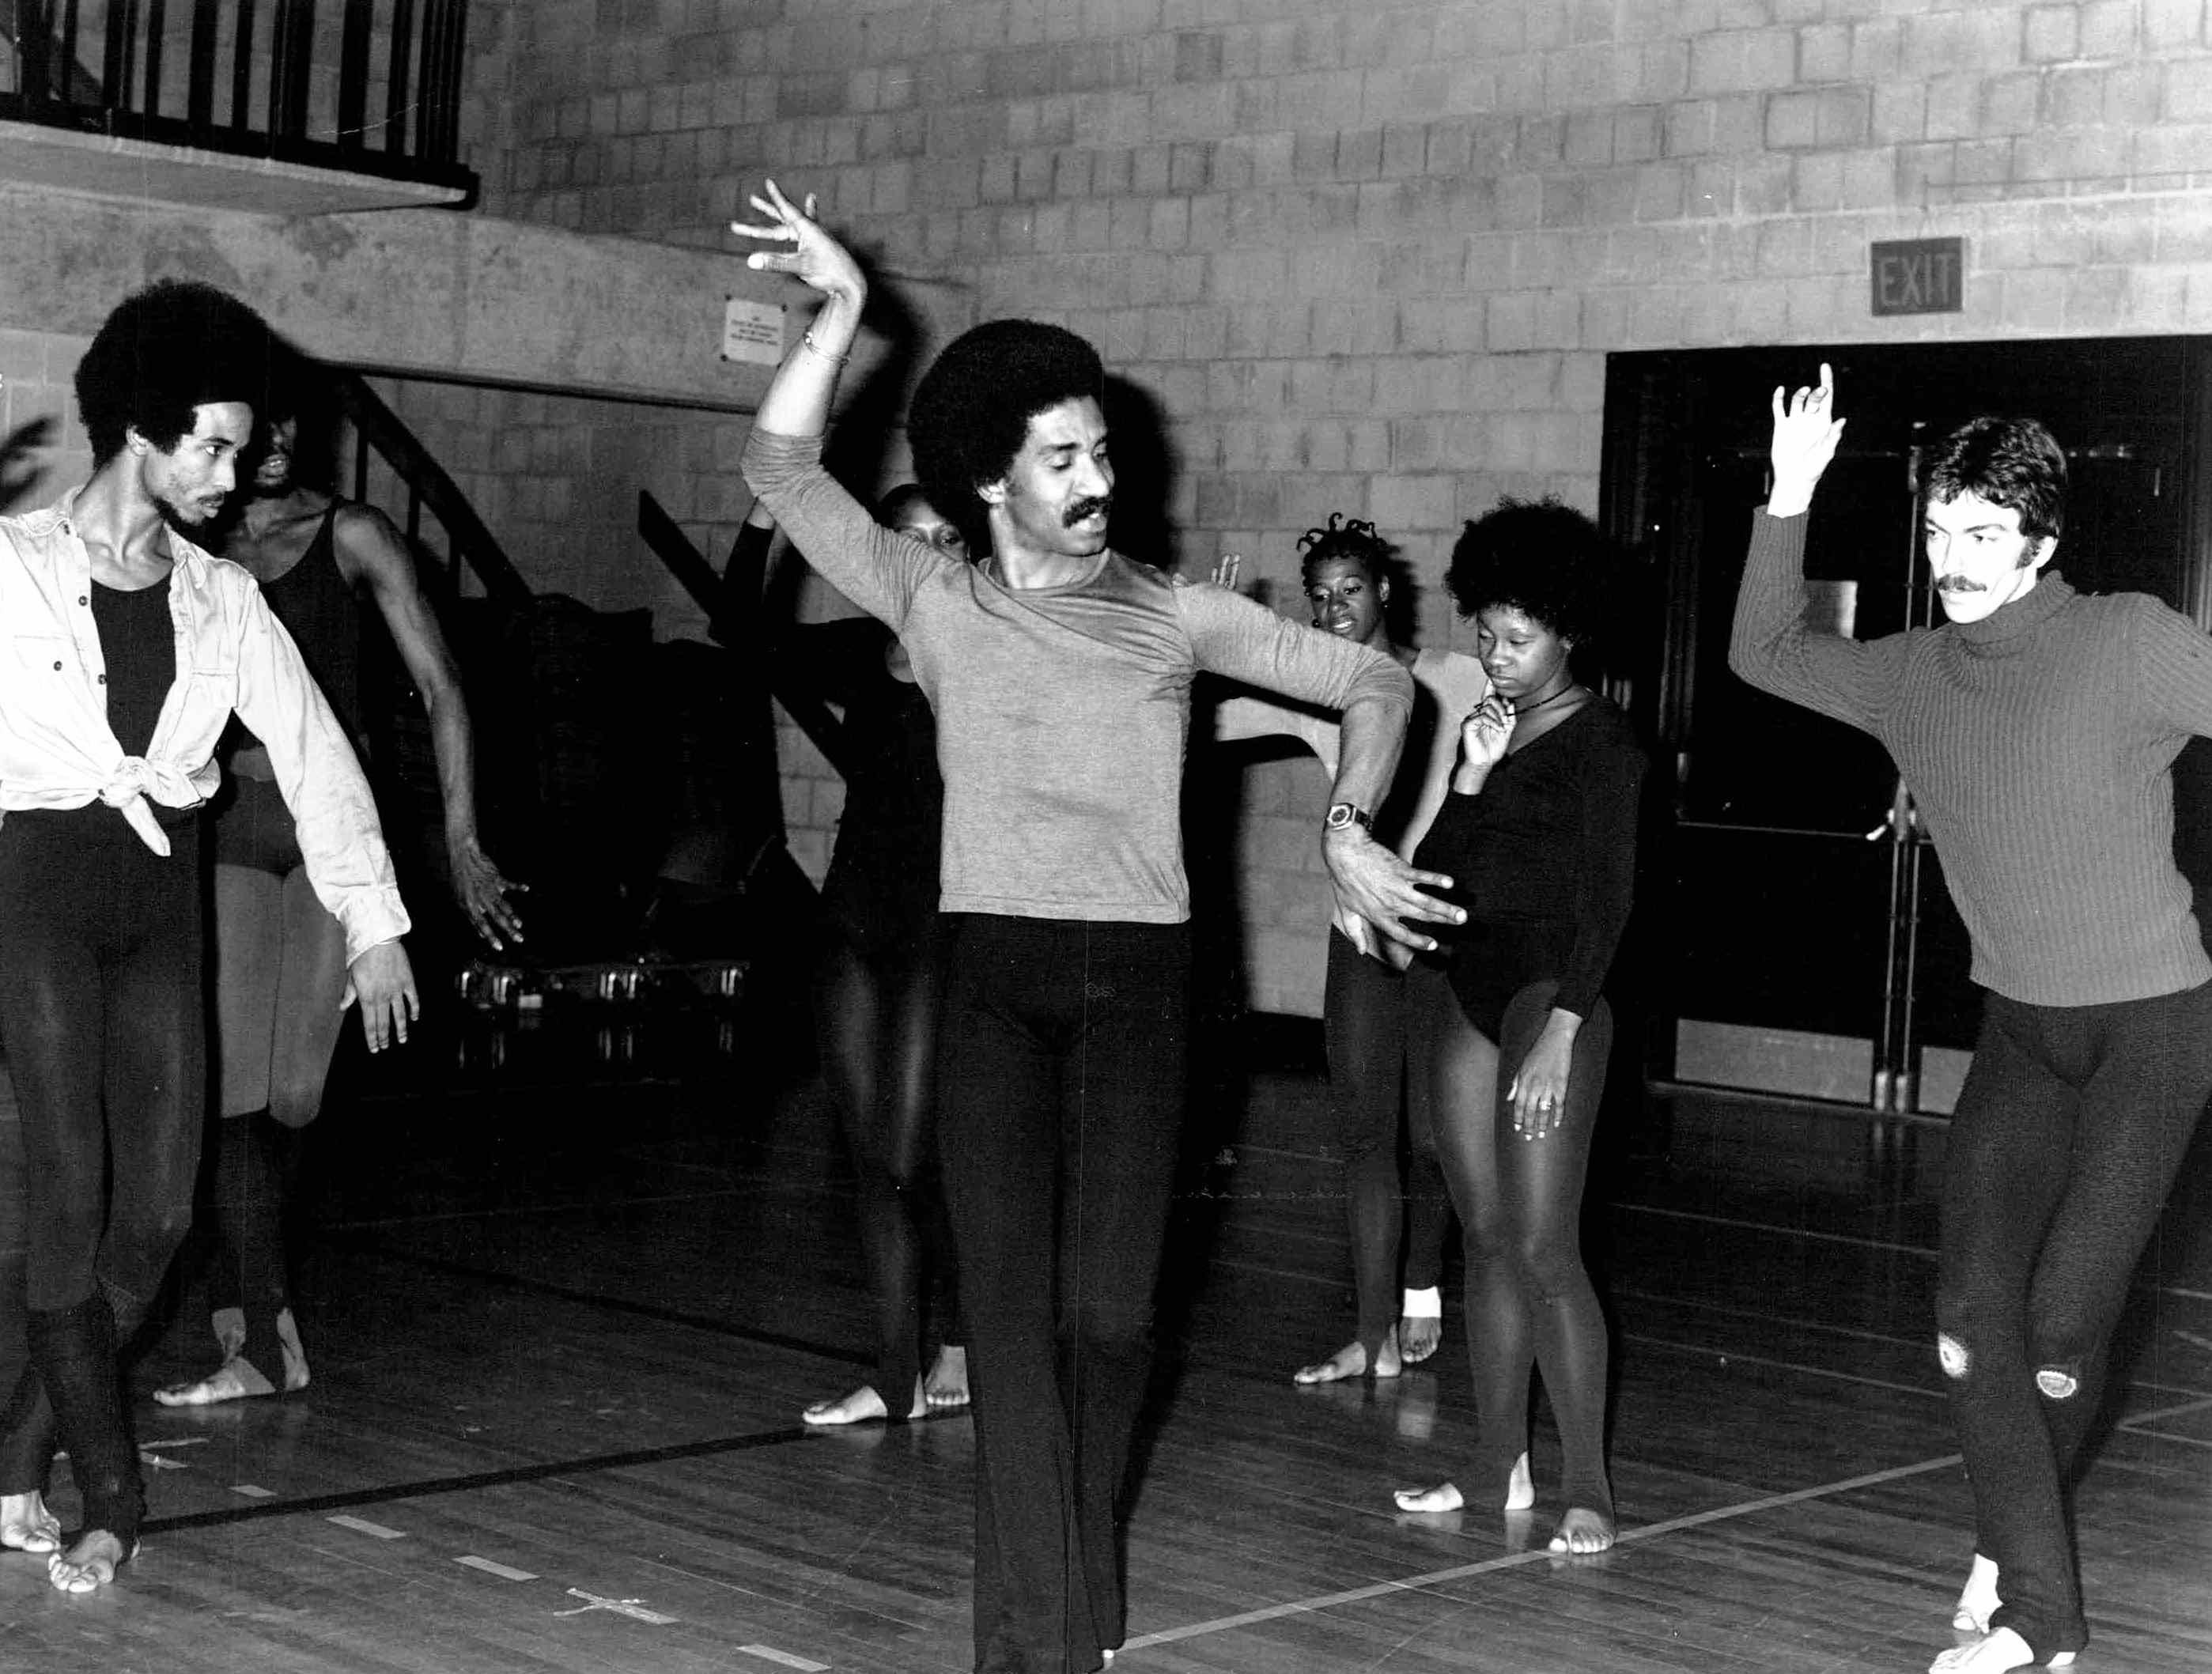 Garth Fagan demonstrates for dancers in this photo from 1974.